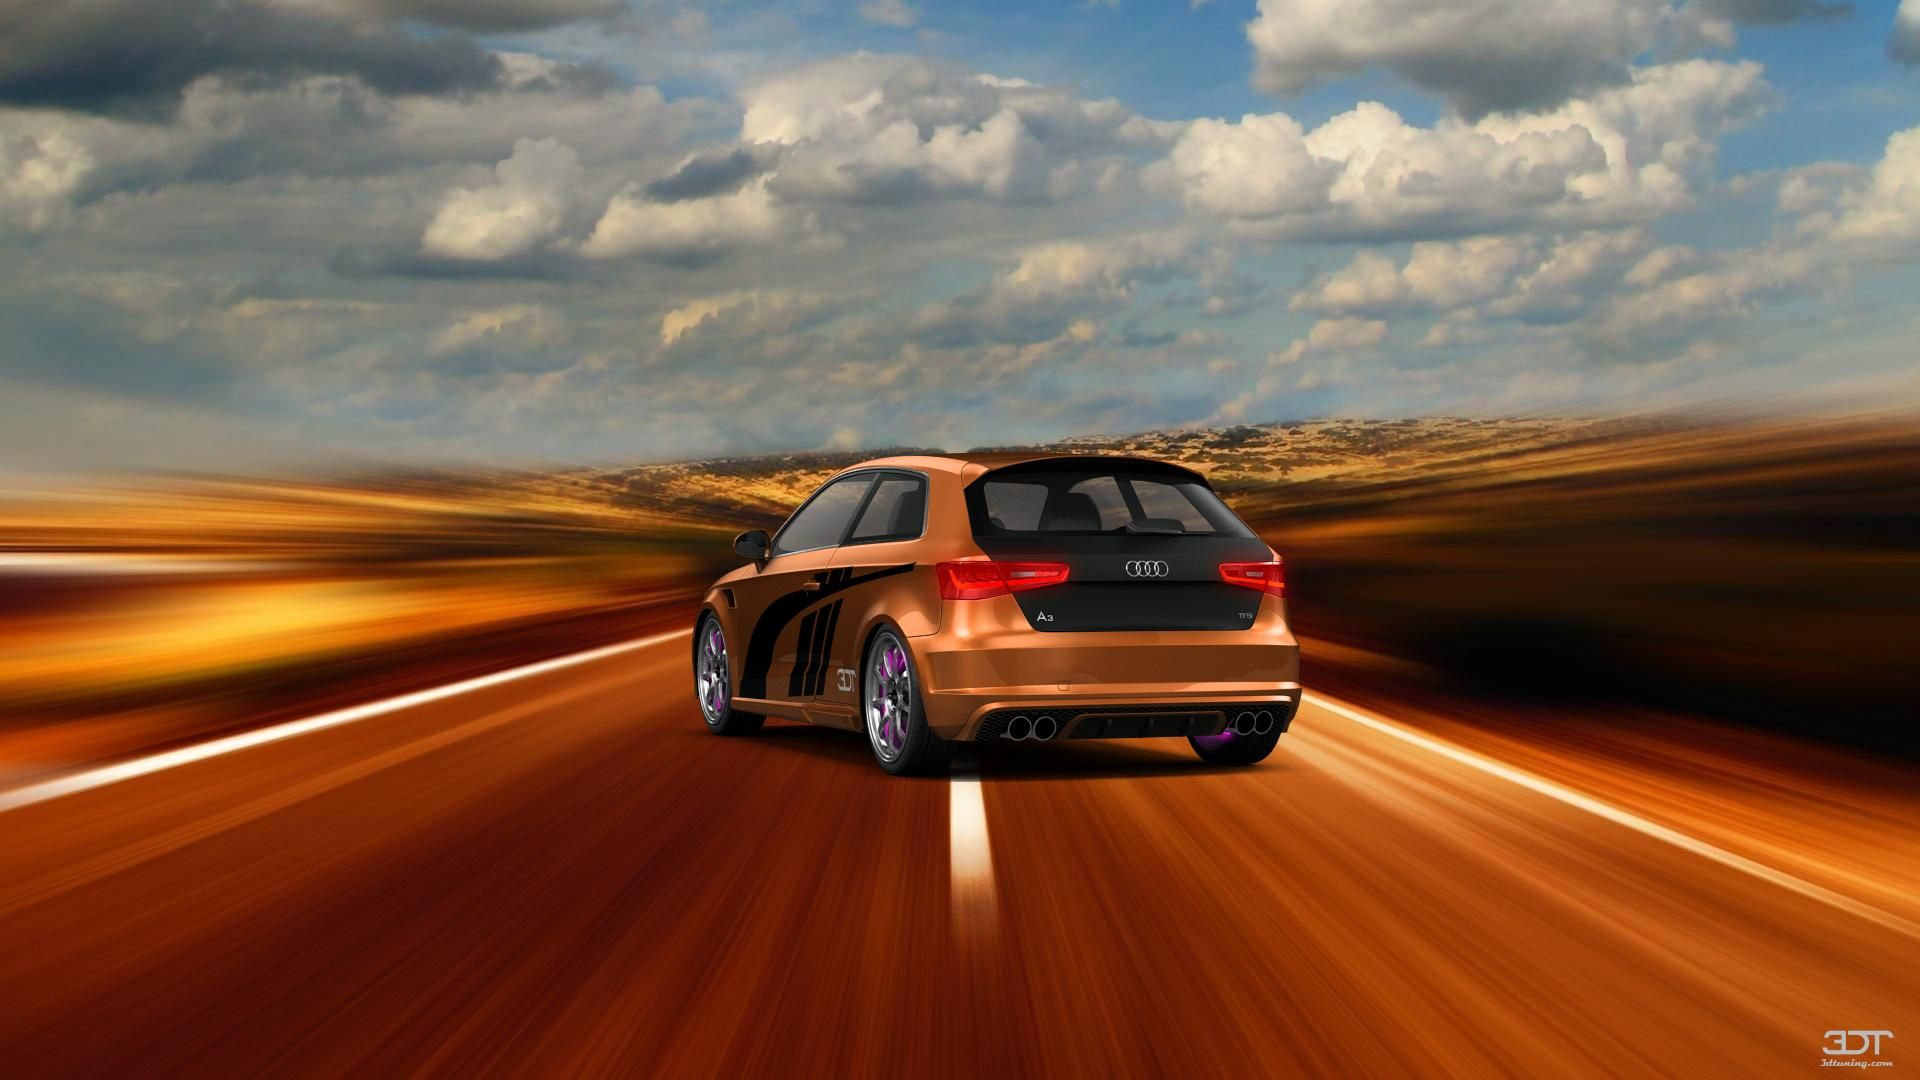 Checkout my tuning audi a3 2013 at 3dtuning 3dtuning tuning